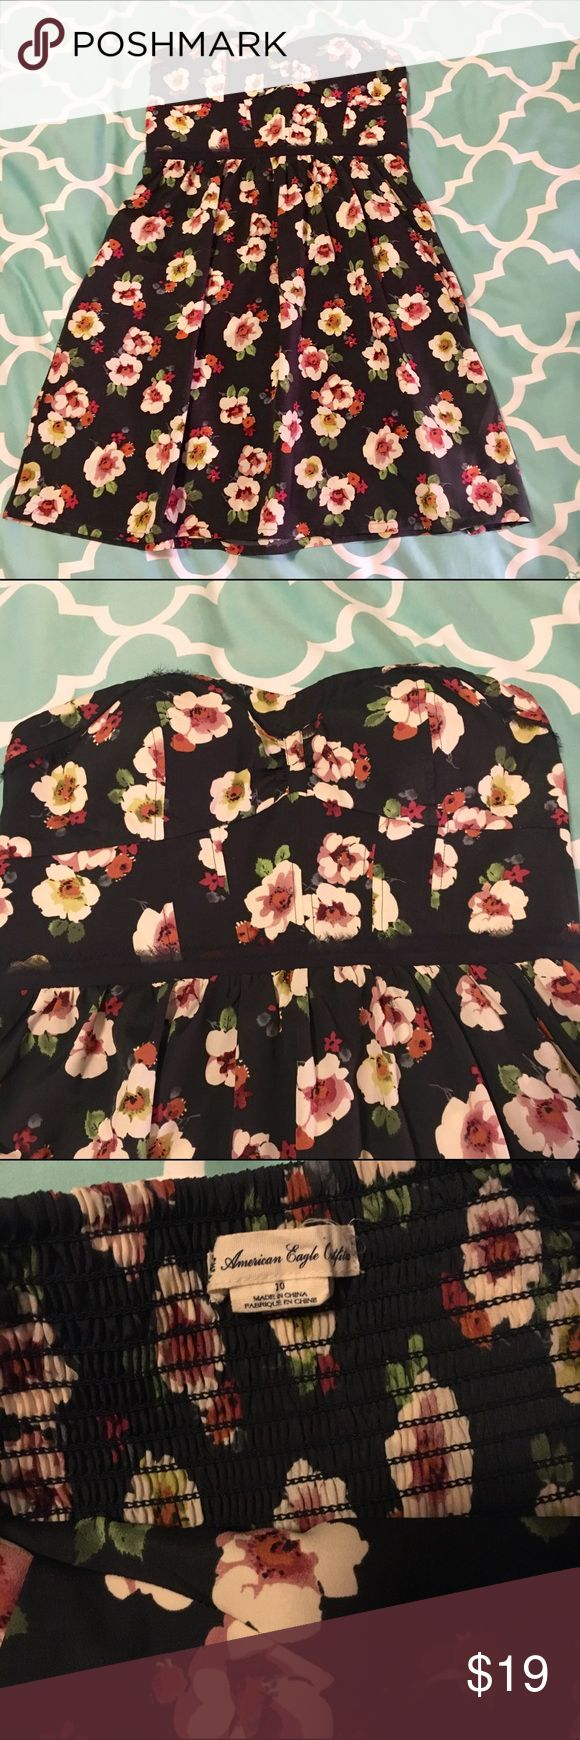 """American Eagle navy floral dress Strapless, sweetheart neckline floral dress. Navy with cream and pink flowers. Has molded padded bust so could be worn without a strapless bra. Pulls on, no zipper. Has pockets. Very flattering and cute! Top of bust to hem, 29"""" American Eagle Outfitters Dresses Strapless"""